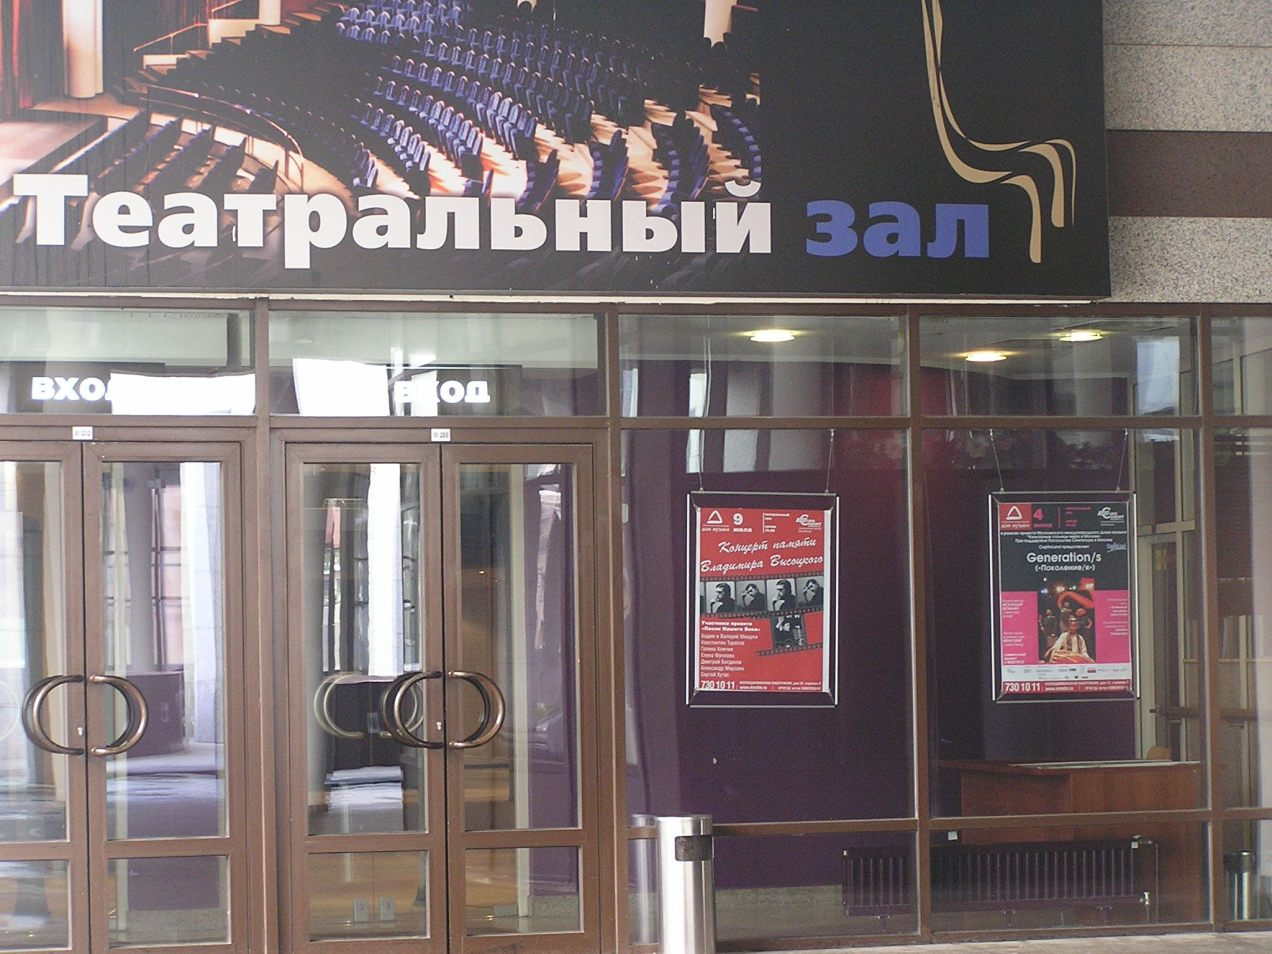 2008: This is  the Moscow International House of Music Dom Muzyki, where Generations was performed. You can see the poster on the glass door.